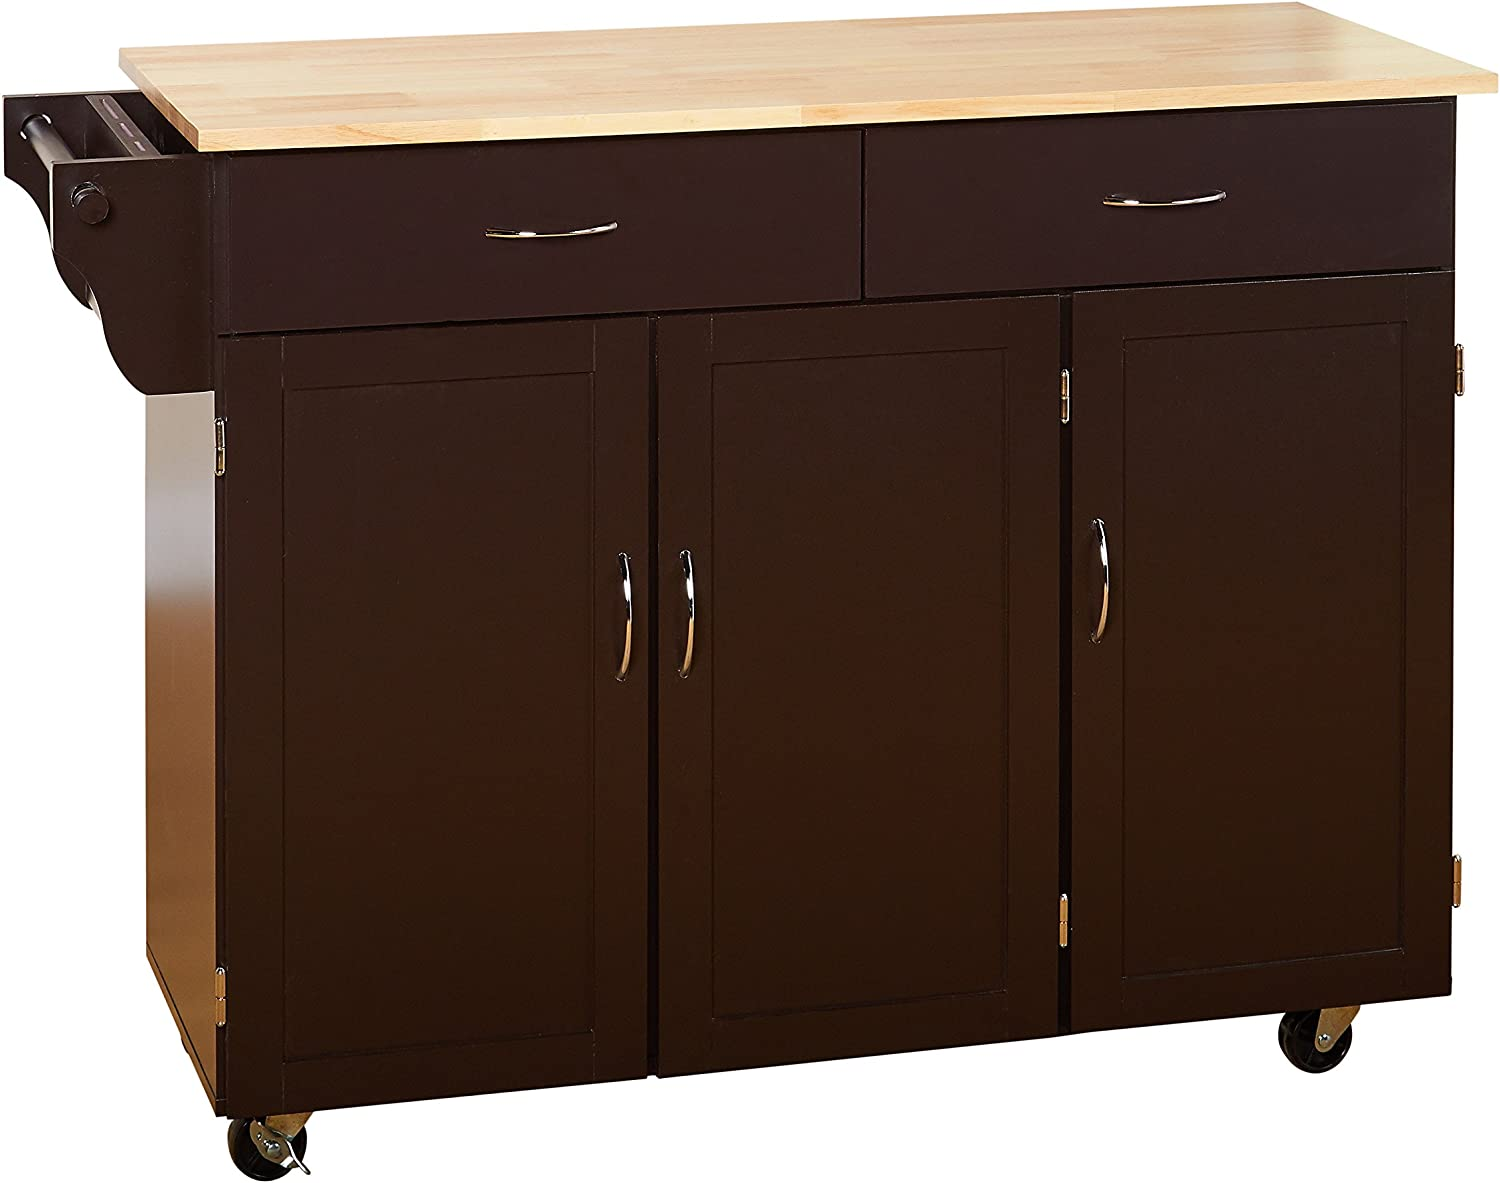 Target Marketing Systems XL Kitchen Cart, X-Large, Espresso/Natural